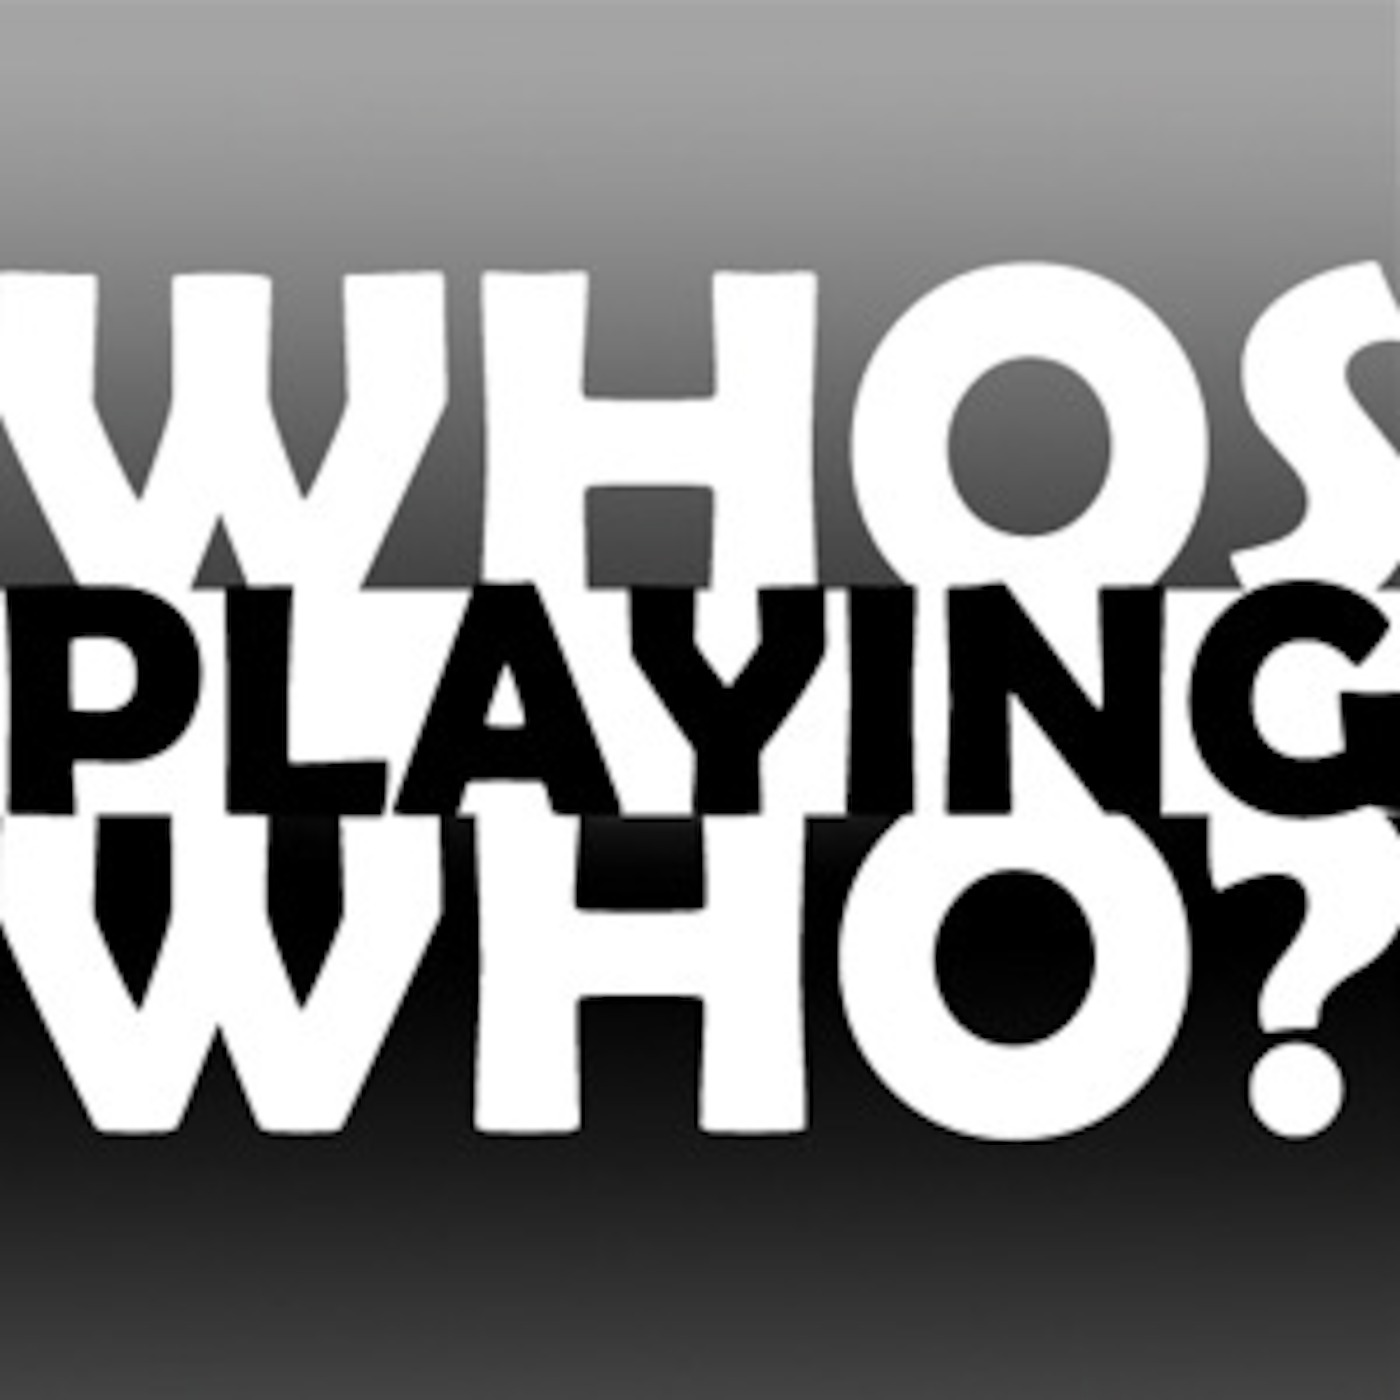 Who's Playing Who?